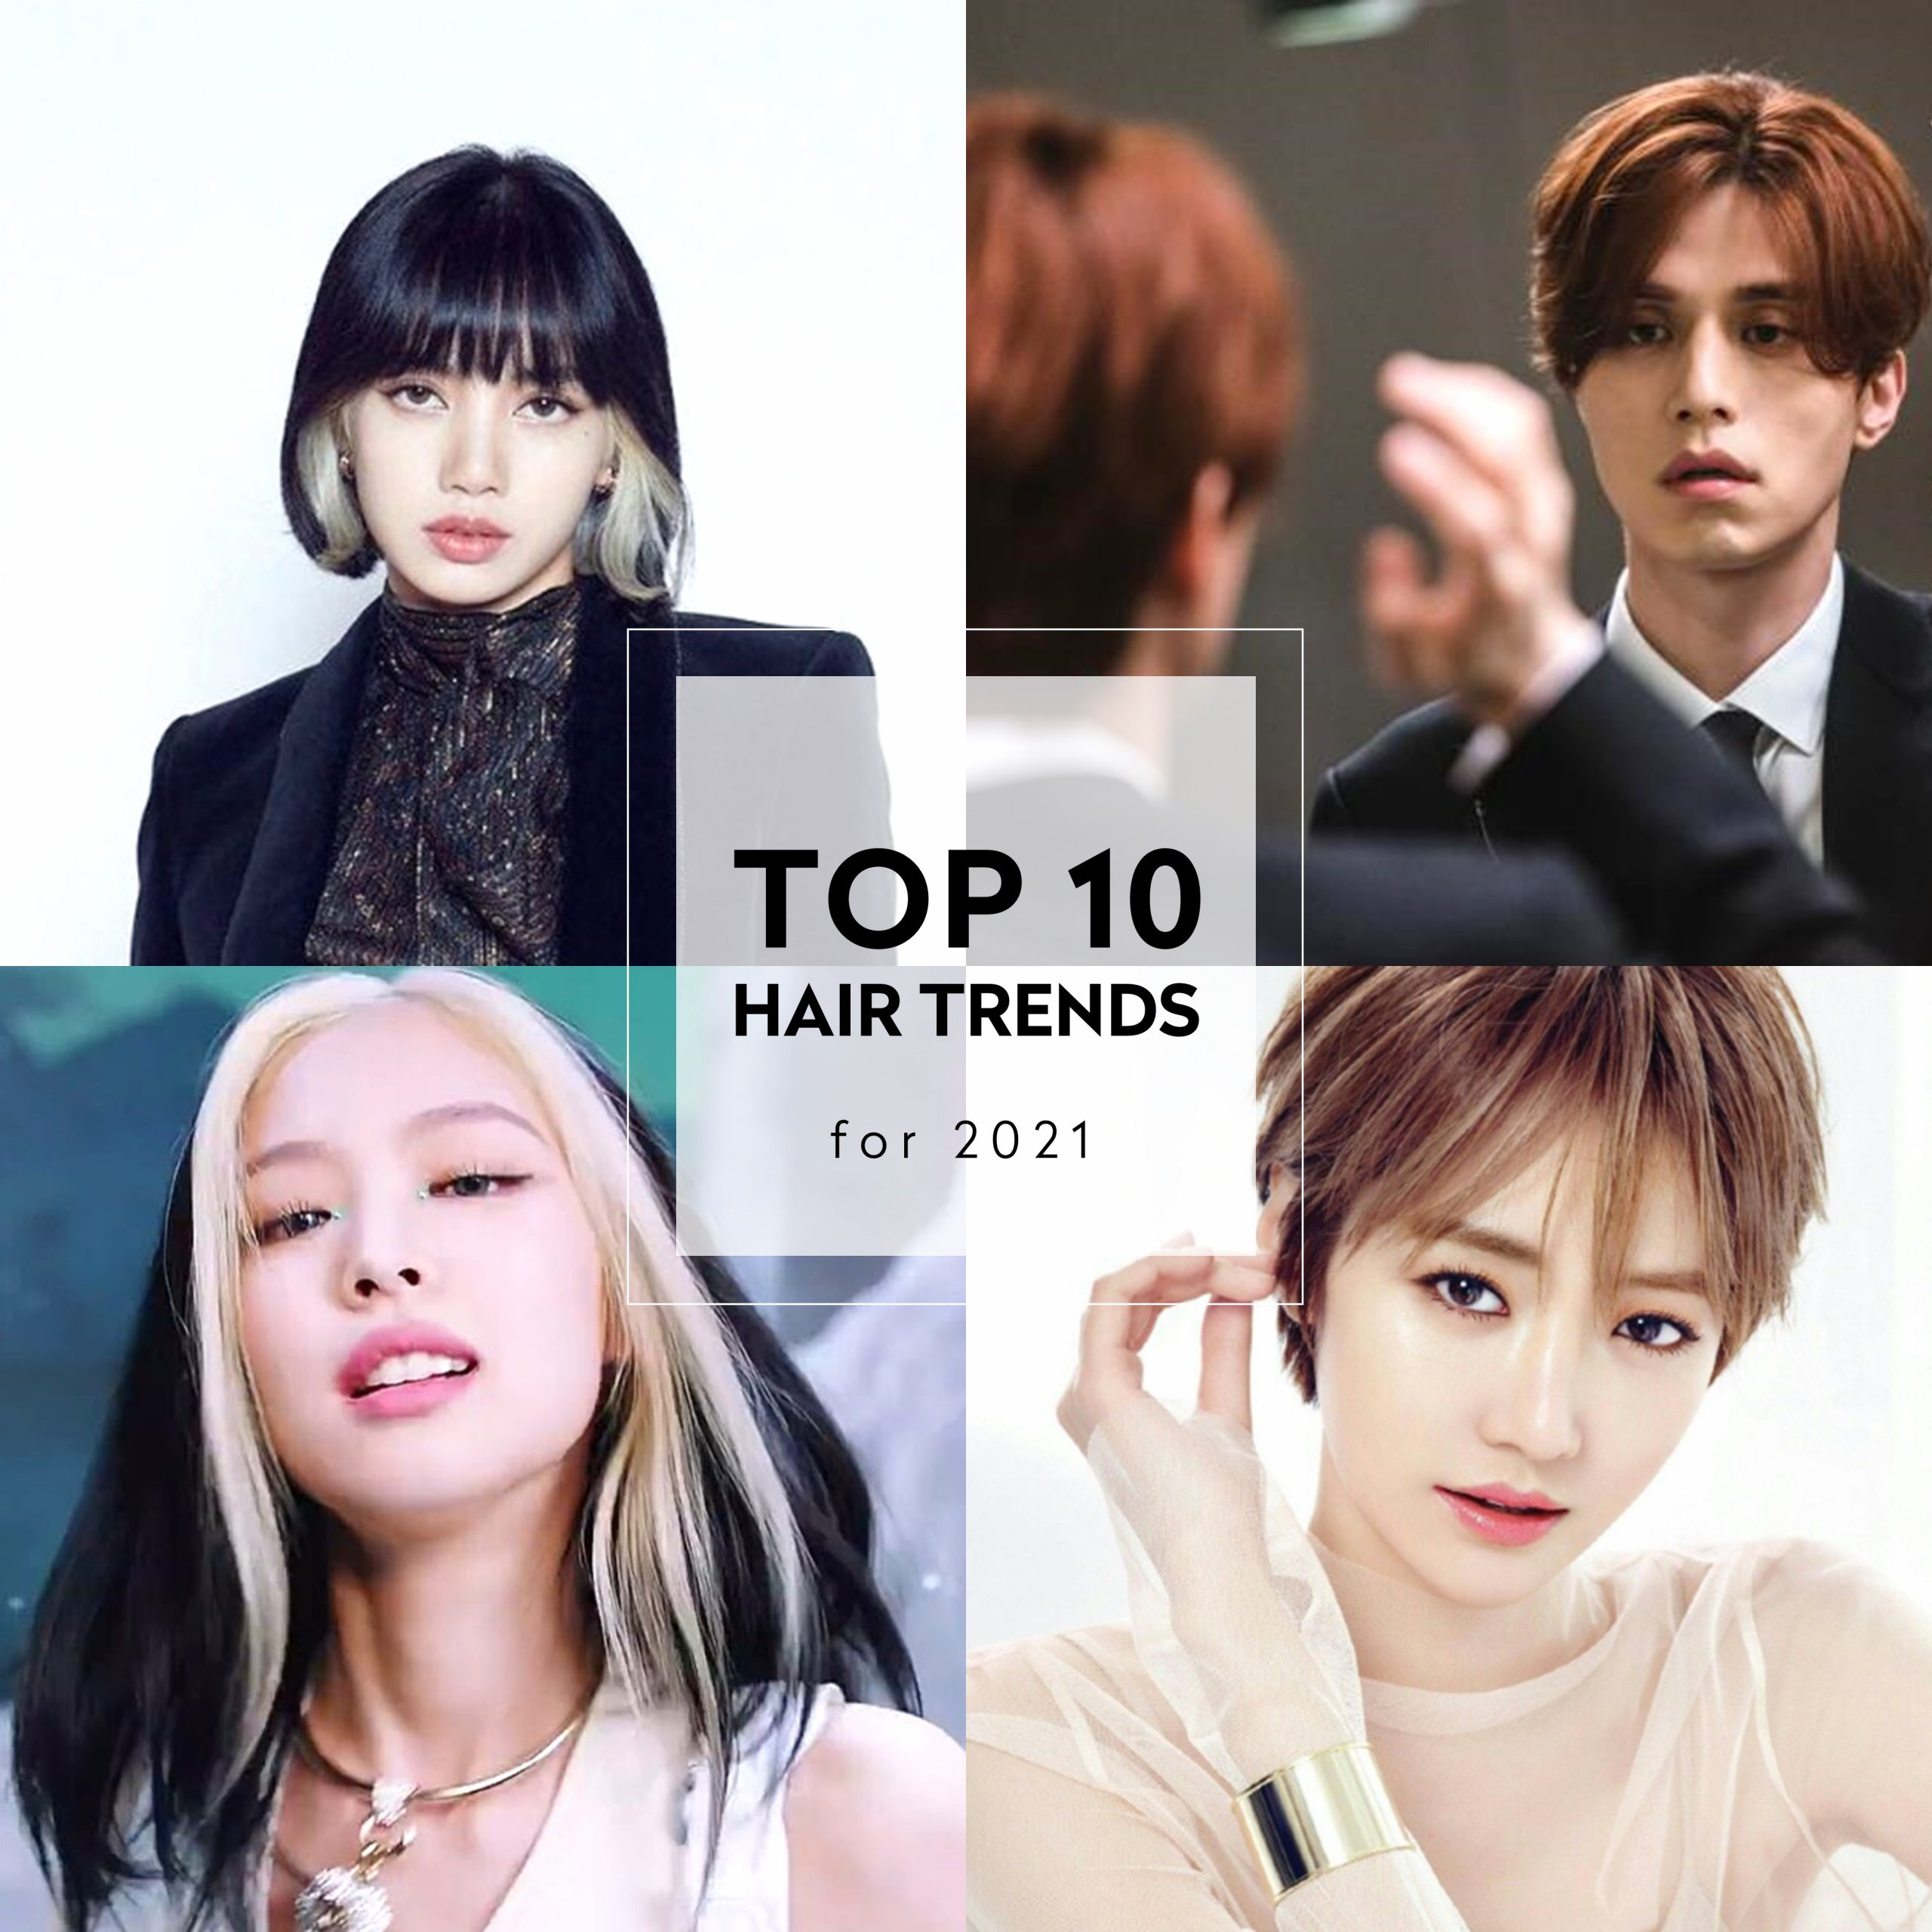 Top 10 Hair Trends That Are Going To Be Huge In 2021 According To Industry Experts Top Leading Hair Salon In Singapore And Orchard Chez Vous